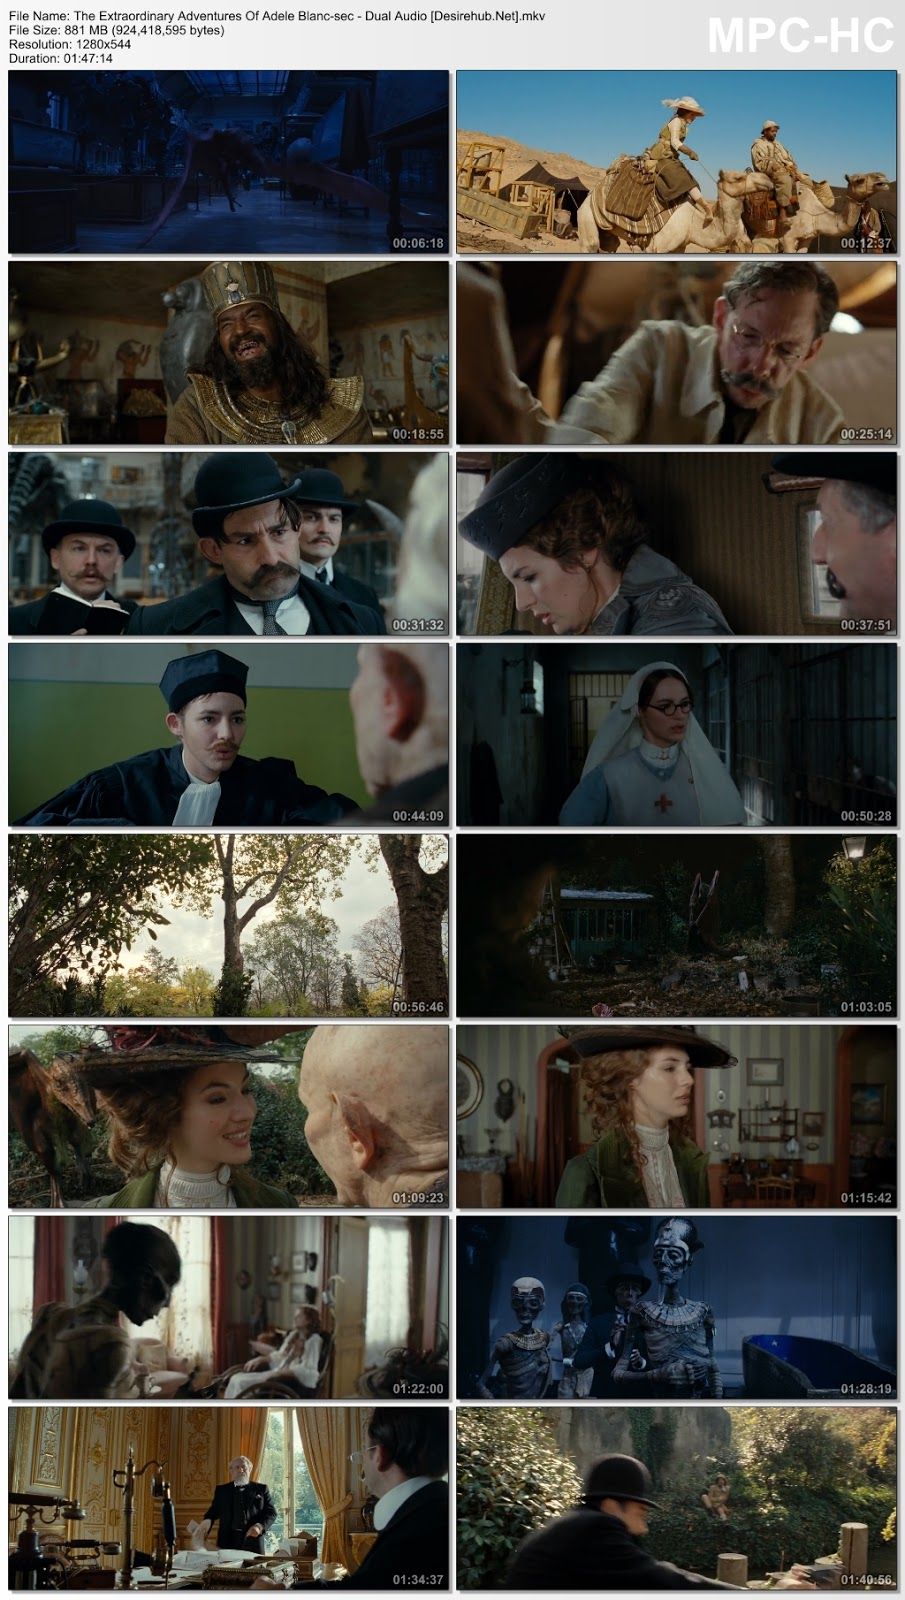 The Extraordinary Adventures Of Adele Blanc-sec 2010 Dual Audio Hindi 720p BluRay 850MB Desirehub